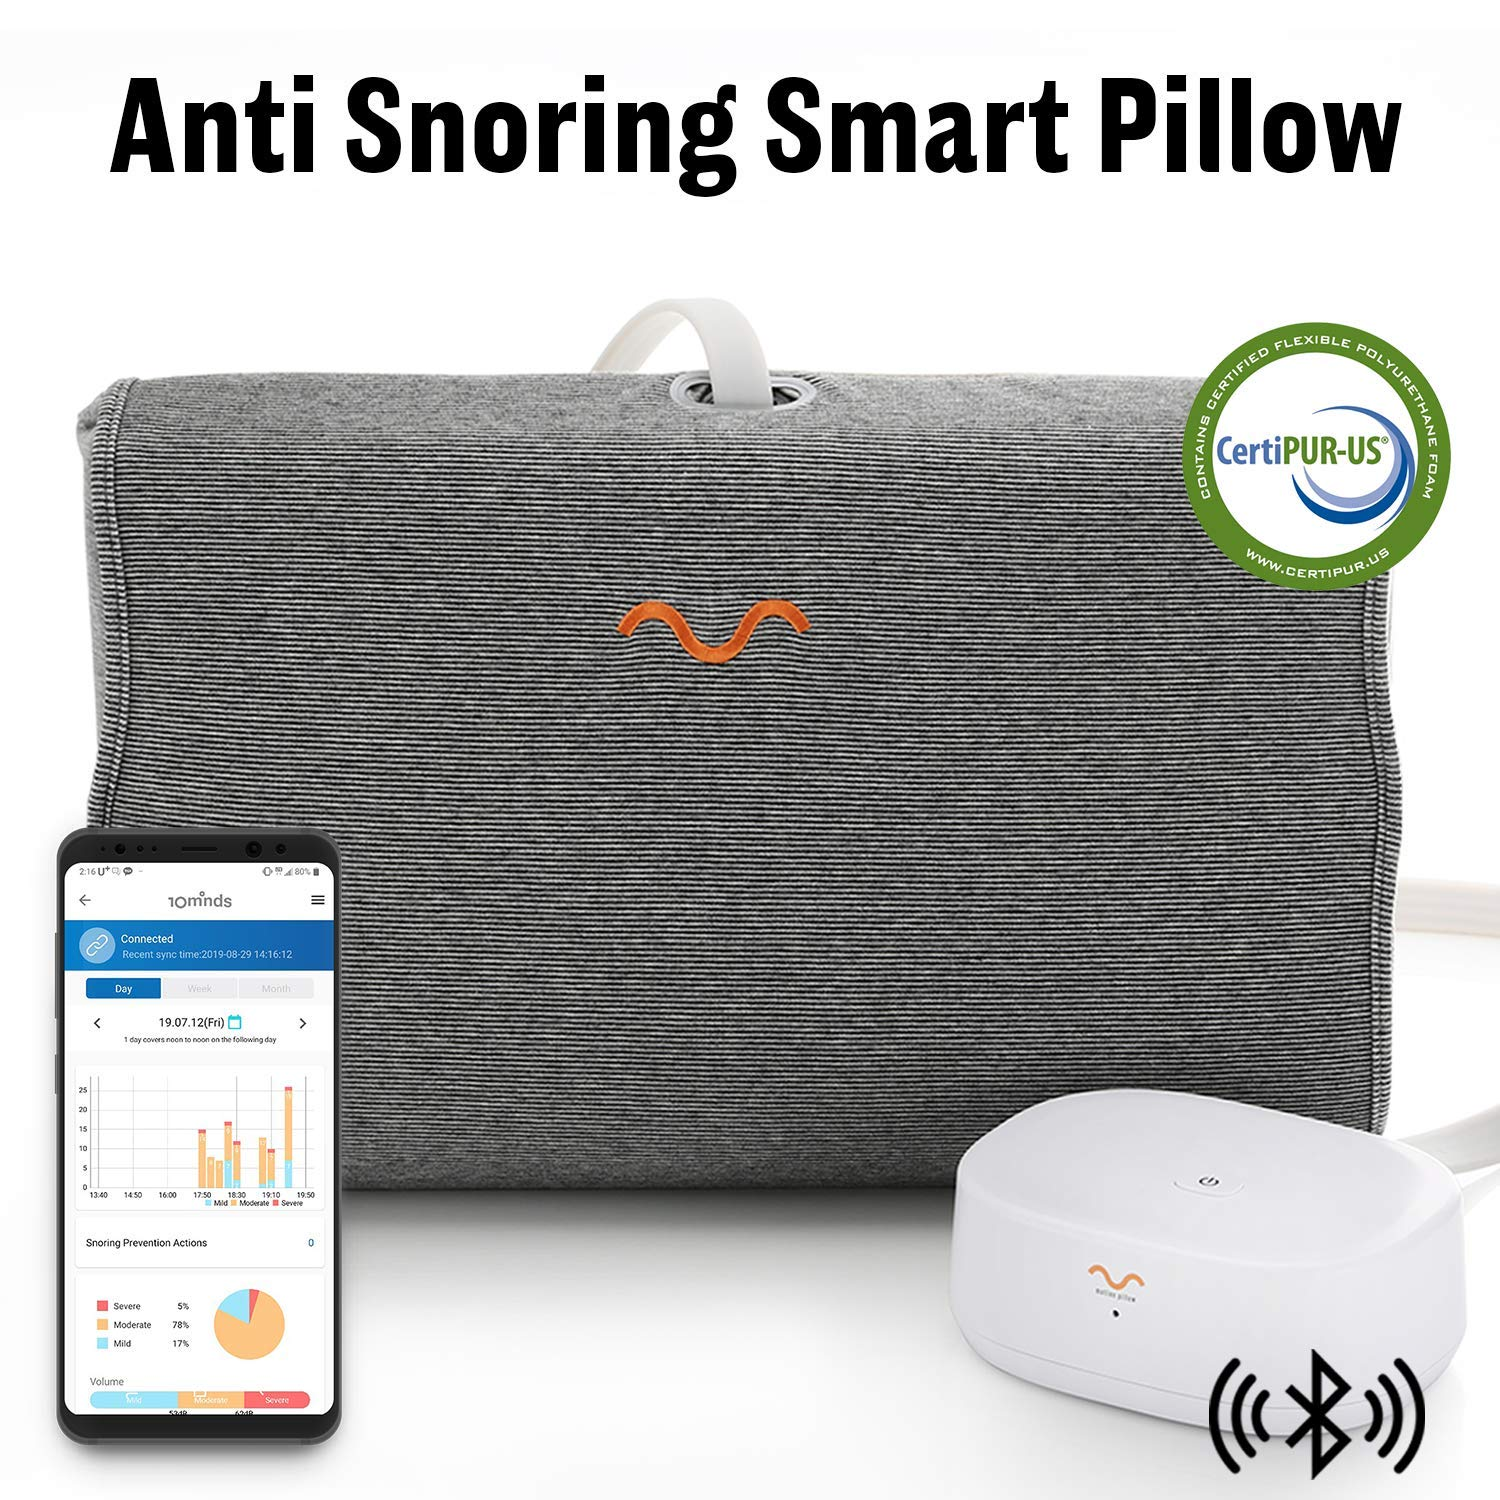 10Minds Motion Pillow, Sleep Tracking Non-Intrusive, Anti-Snoring,CertiPUR-US Memroy Foam, FDA Registered, Cotton USA Cover by 10Minds